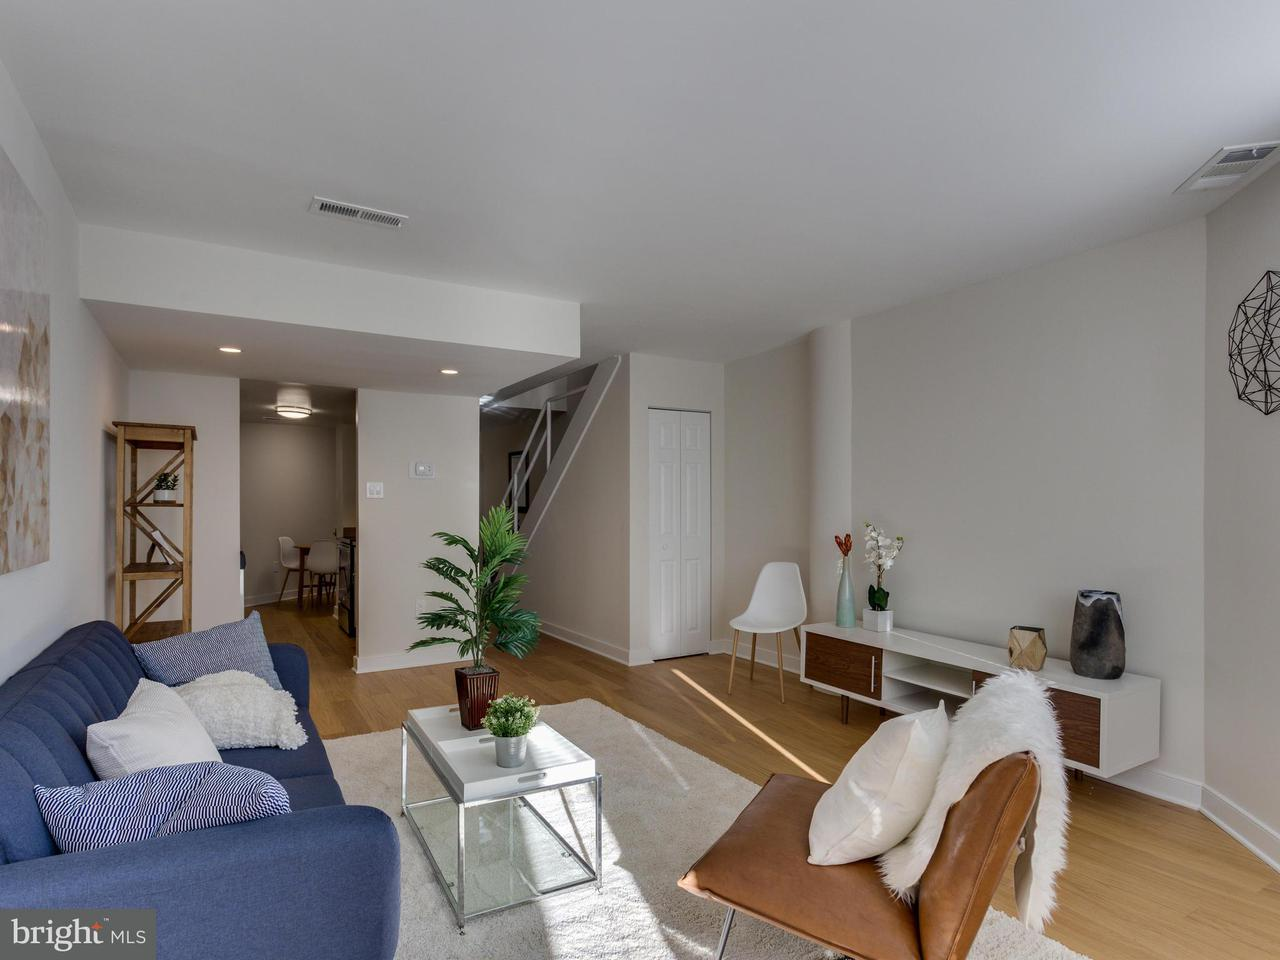 Condominium for Rent at 1200 N St NW #316 Washington, District Of Columbia 20005 United States